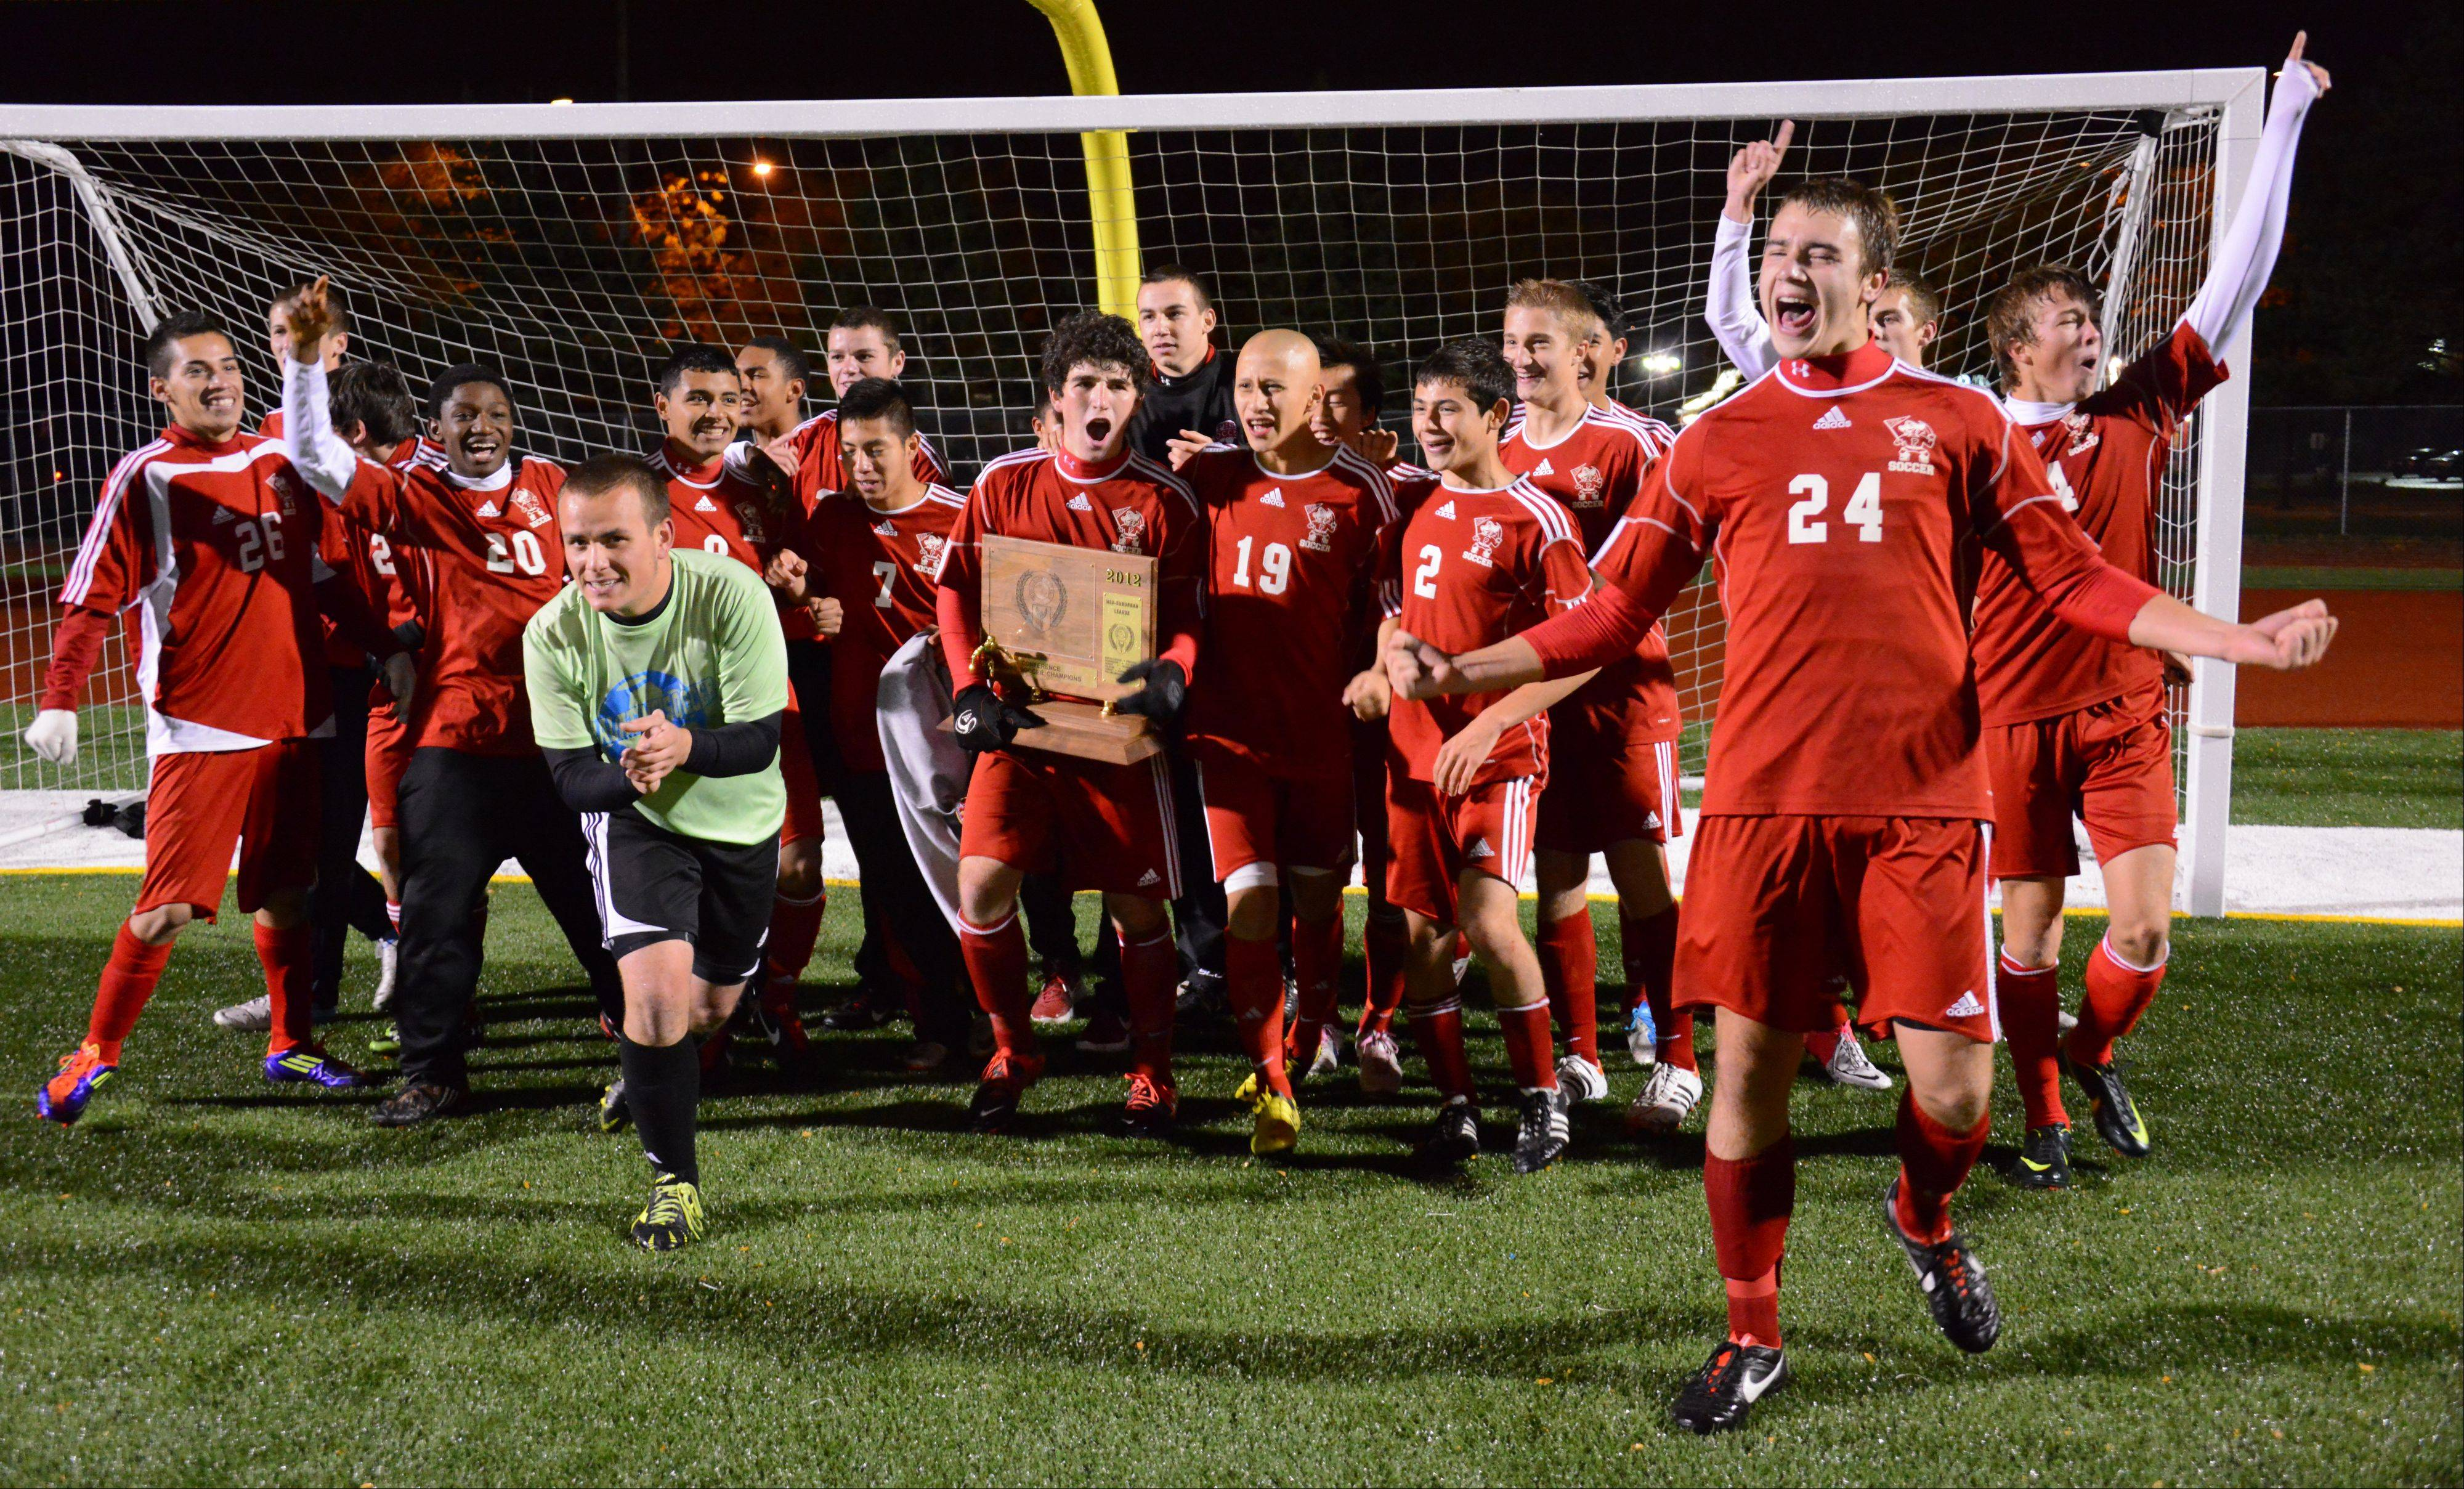 Palatine's Jeremy Velinski and his teammates erupt in excitement after winning the Mid-Suburban League championship soccer game at Buffalo Grove High School on Thursday.